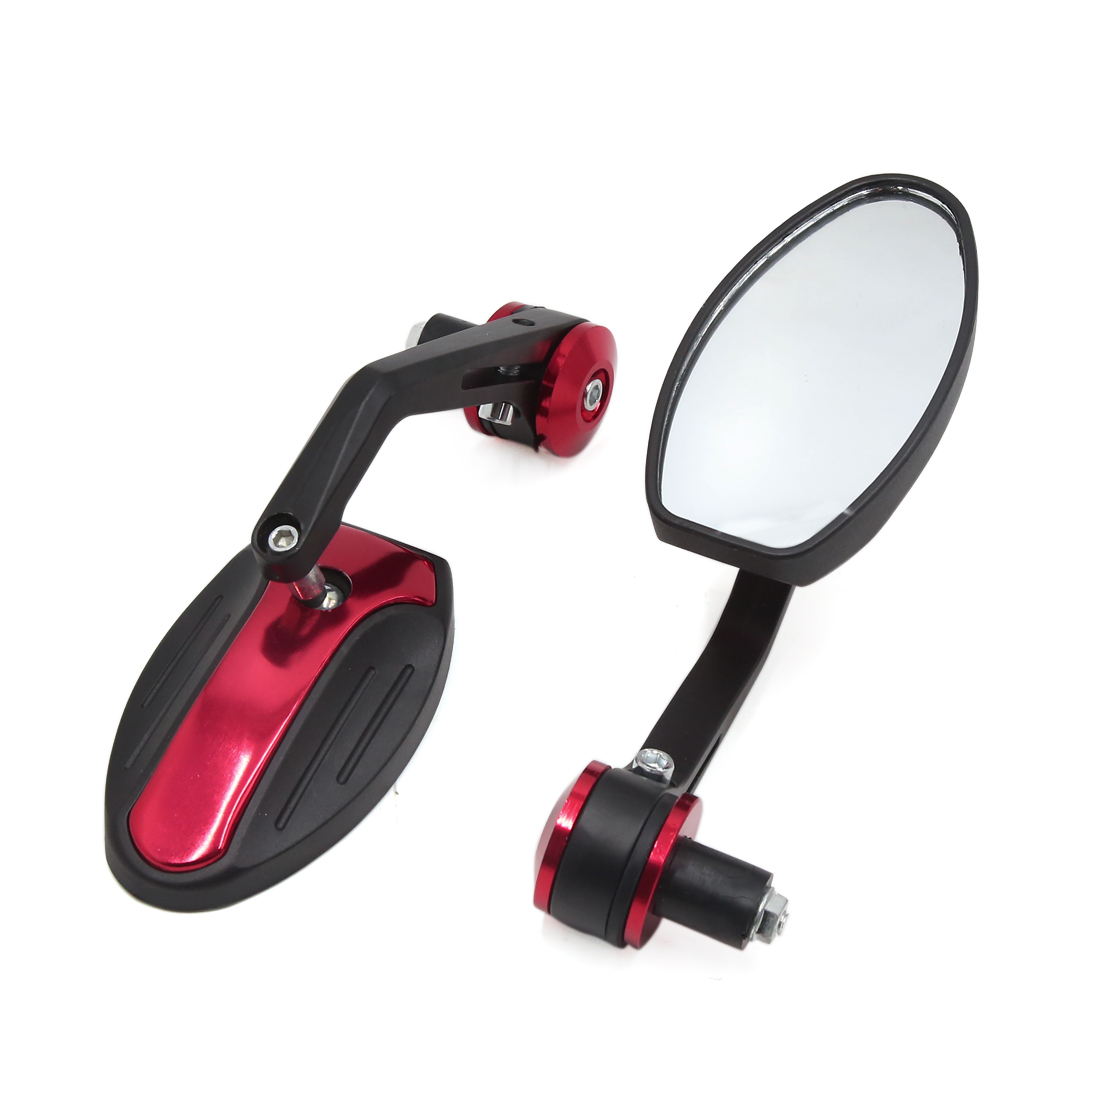 2 Pcs 6mm Thread Dia Metal Handle Adjustable Motorcycle Rearview Side Mirrors Red Black